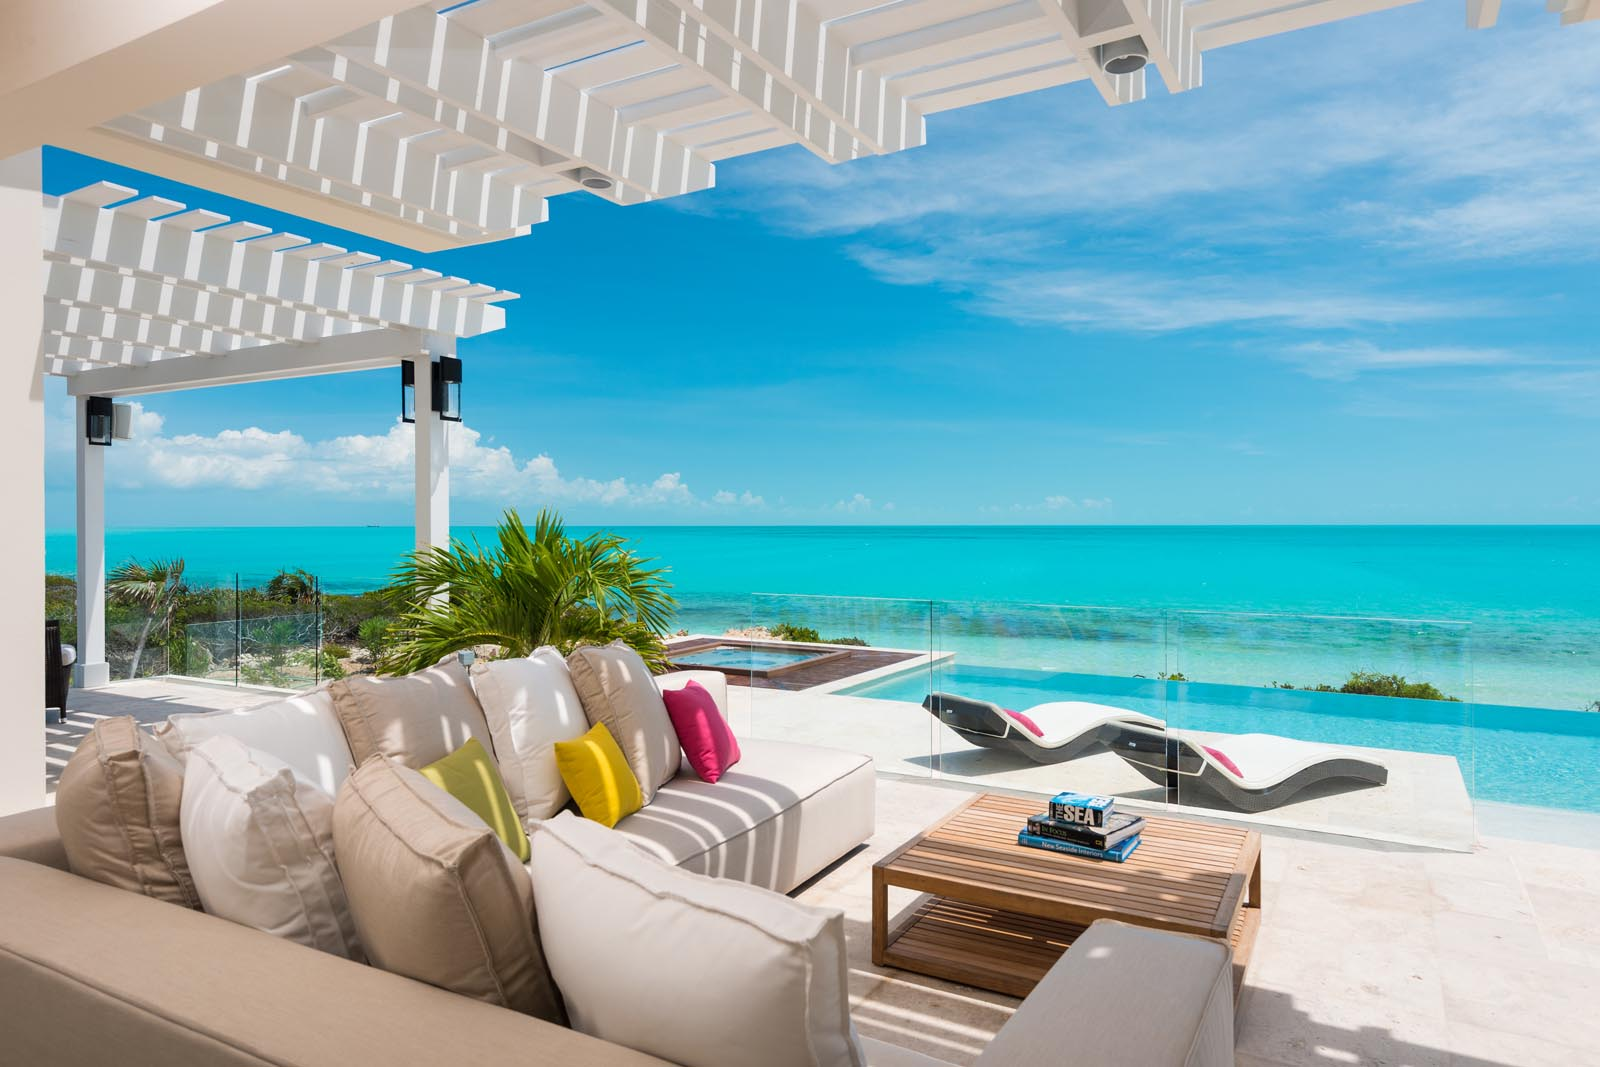 Villa isla long bay beach providenciales provo turks for King s fish house long beach ca